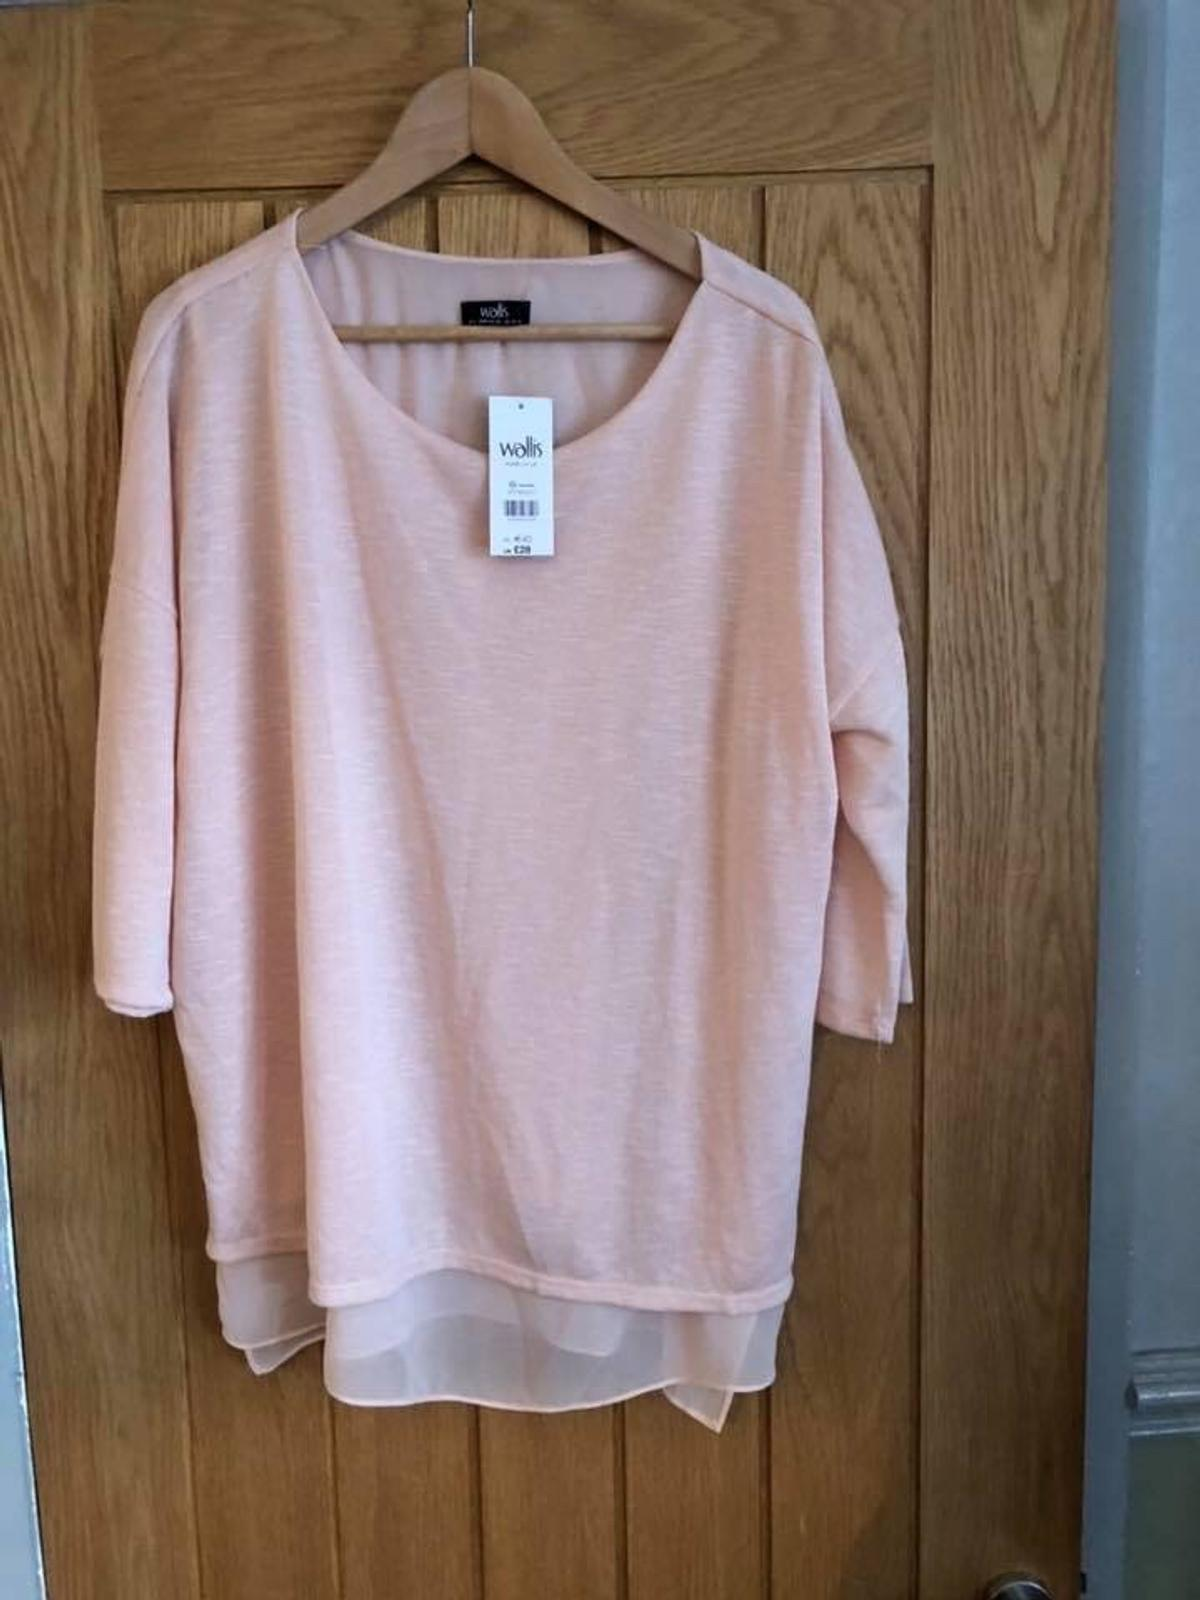 Ladies top Wallis Size large New with tags £6